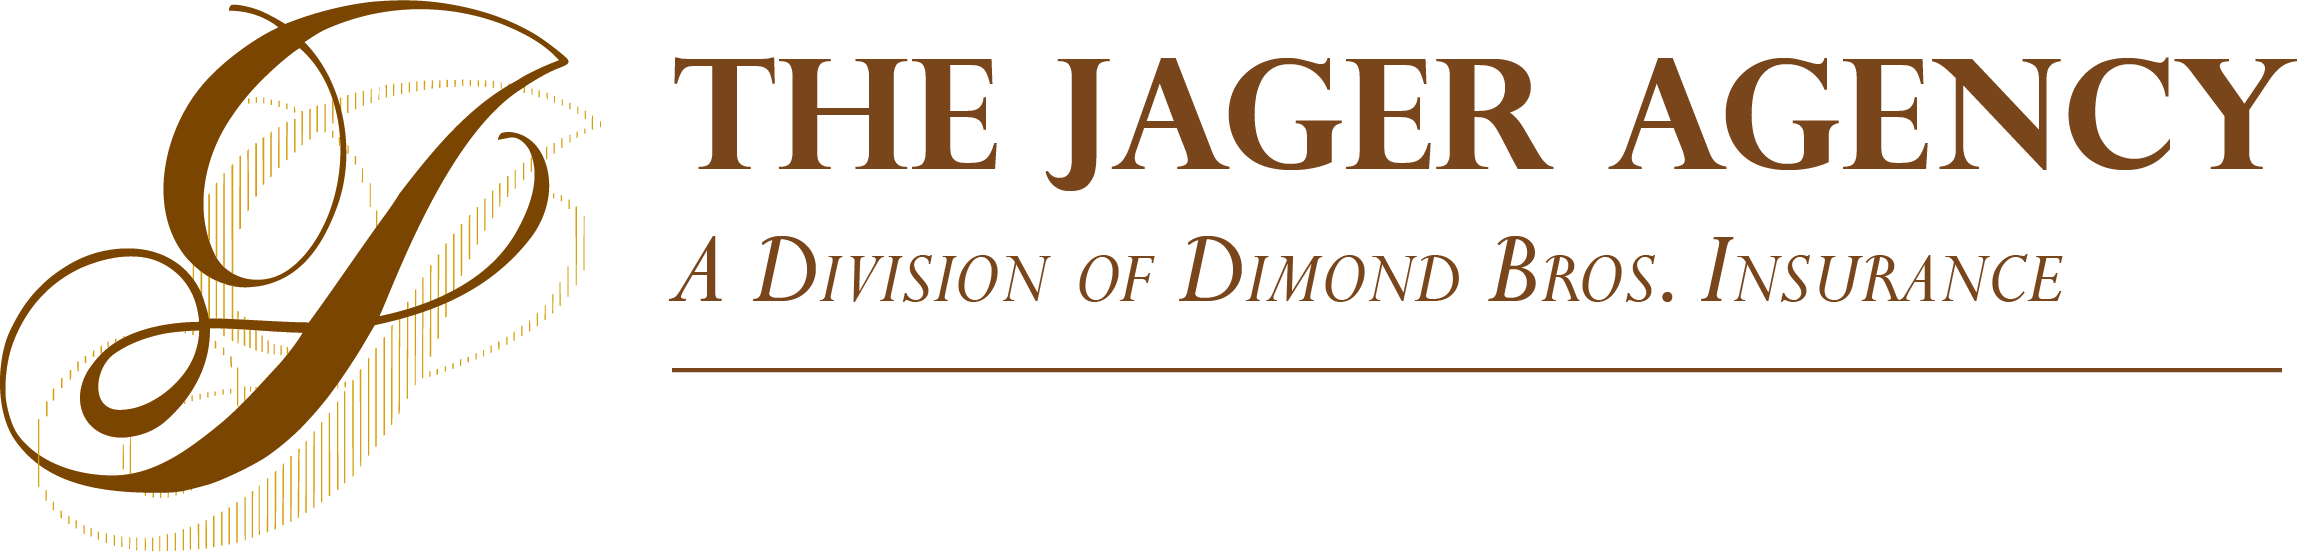 Personal Business Insurance The Jager Agency